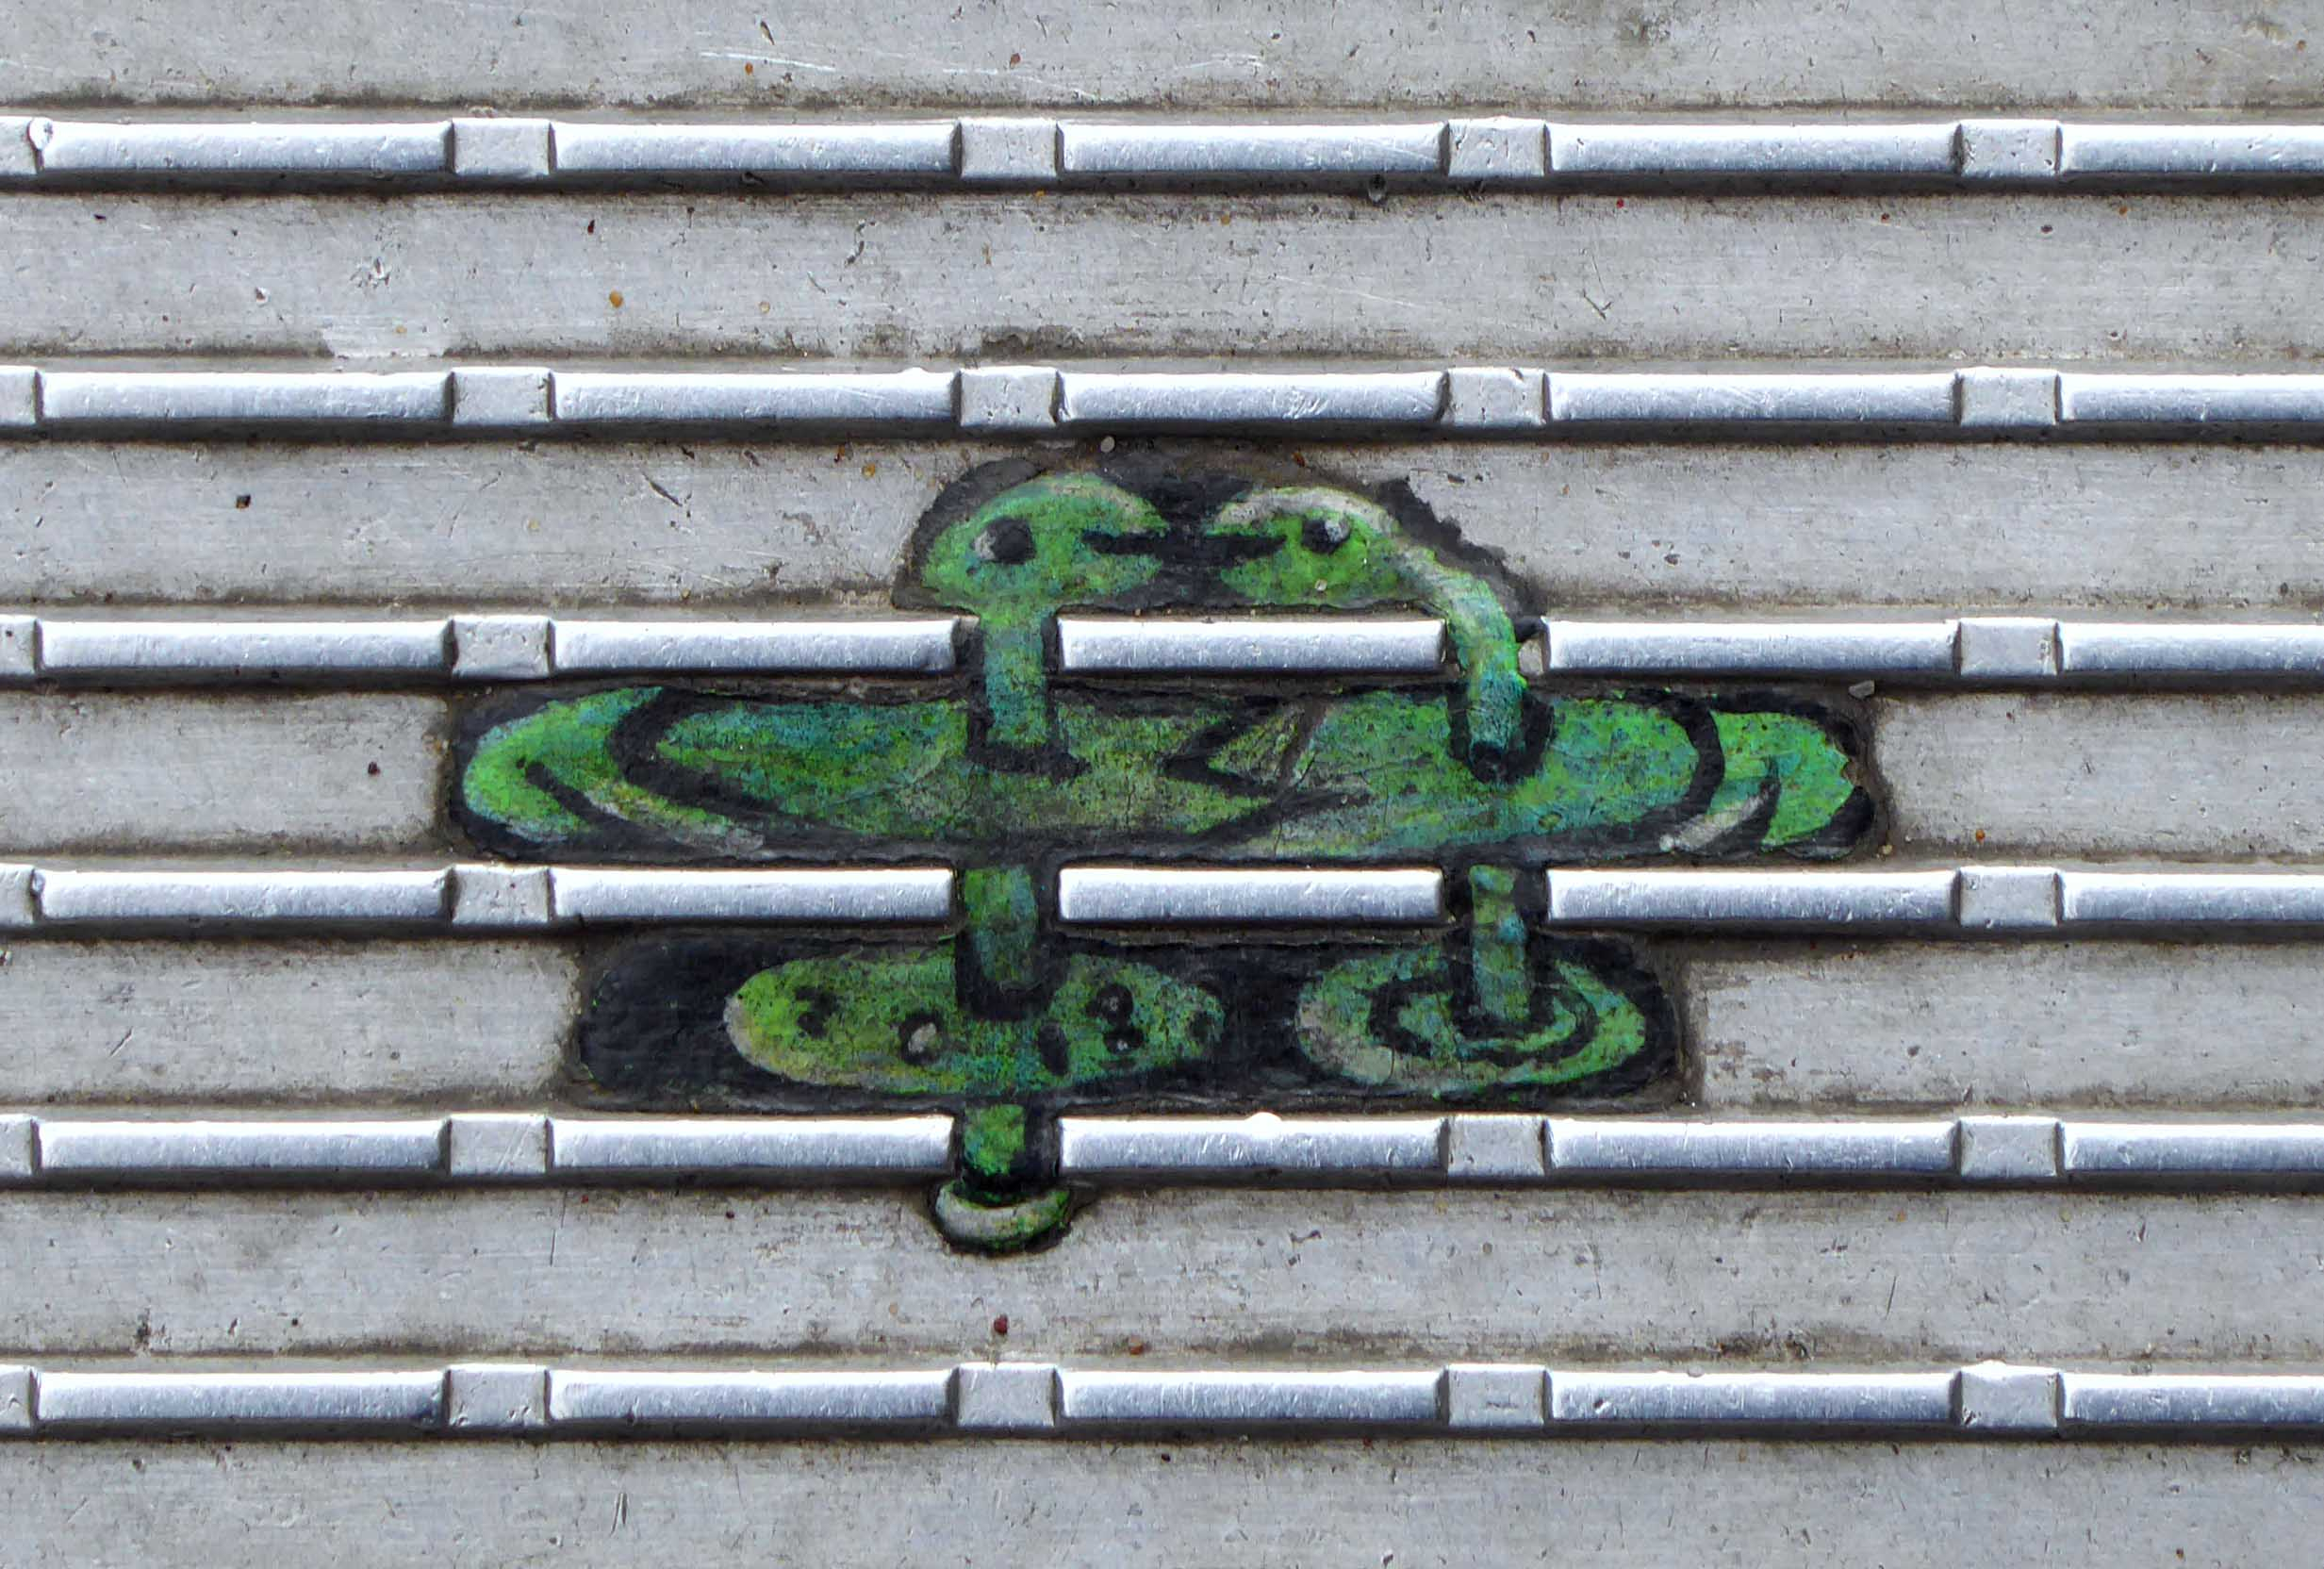 Tiny green painting on ridged metal surface